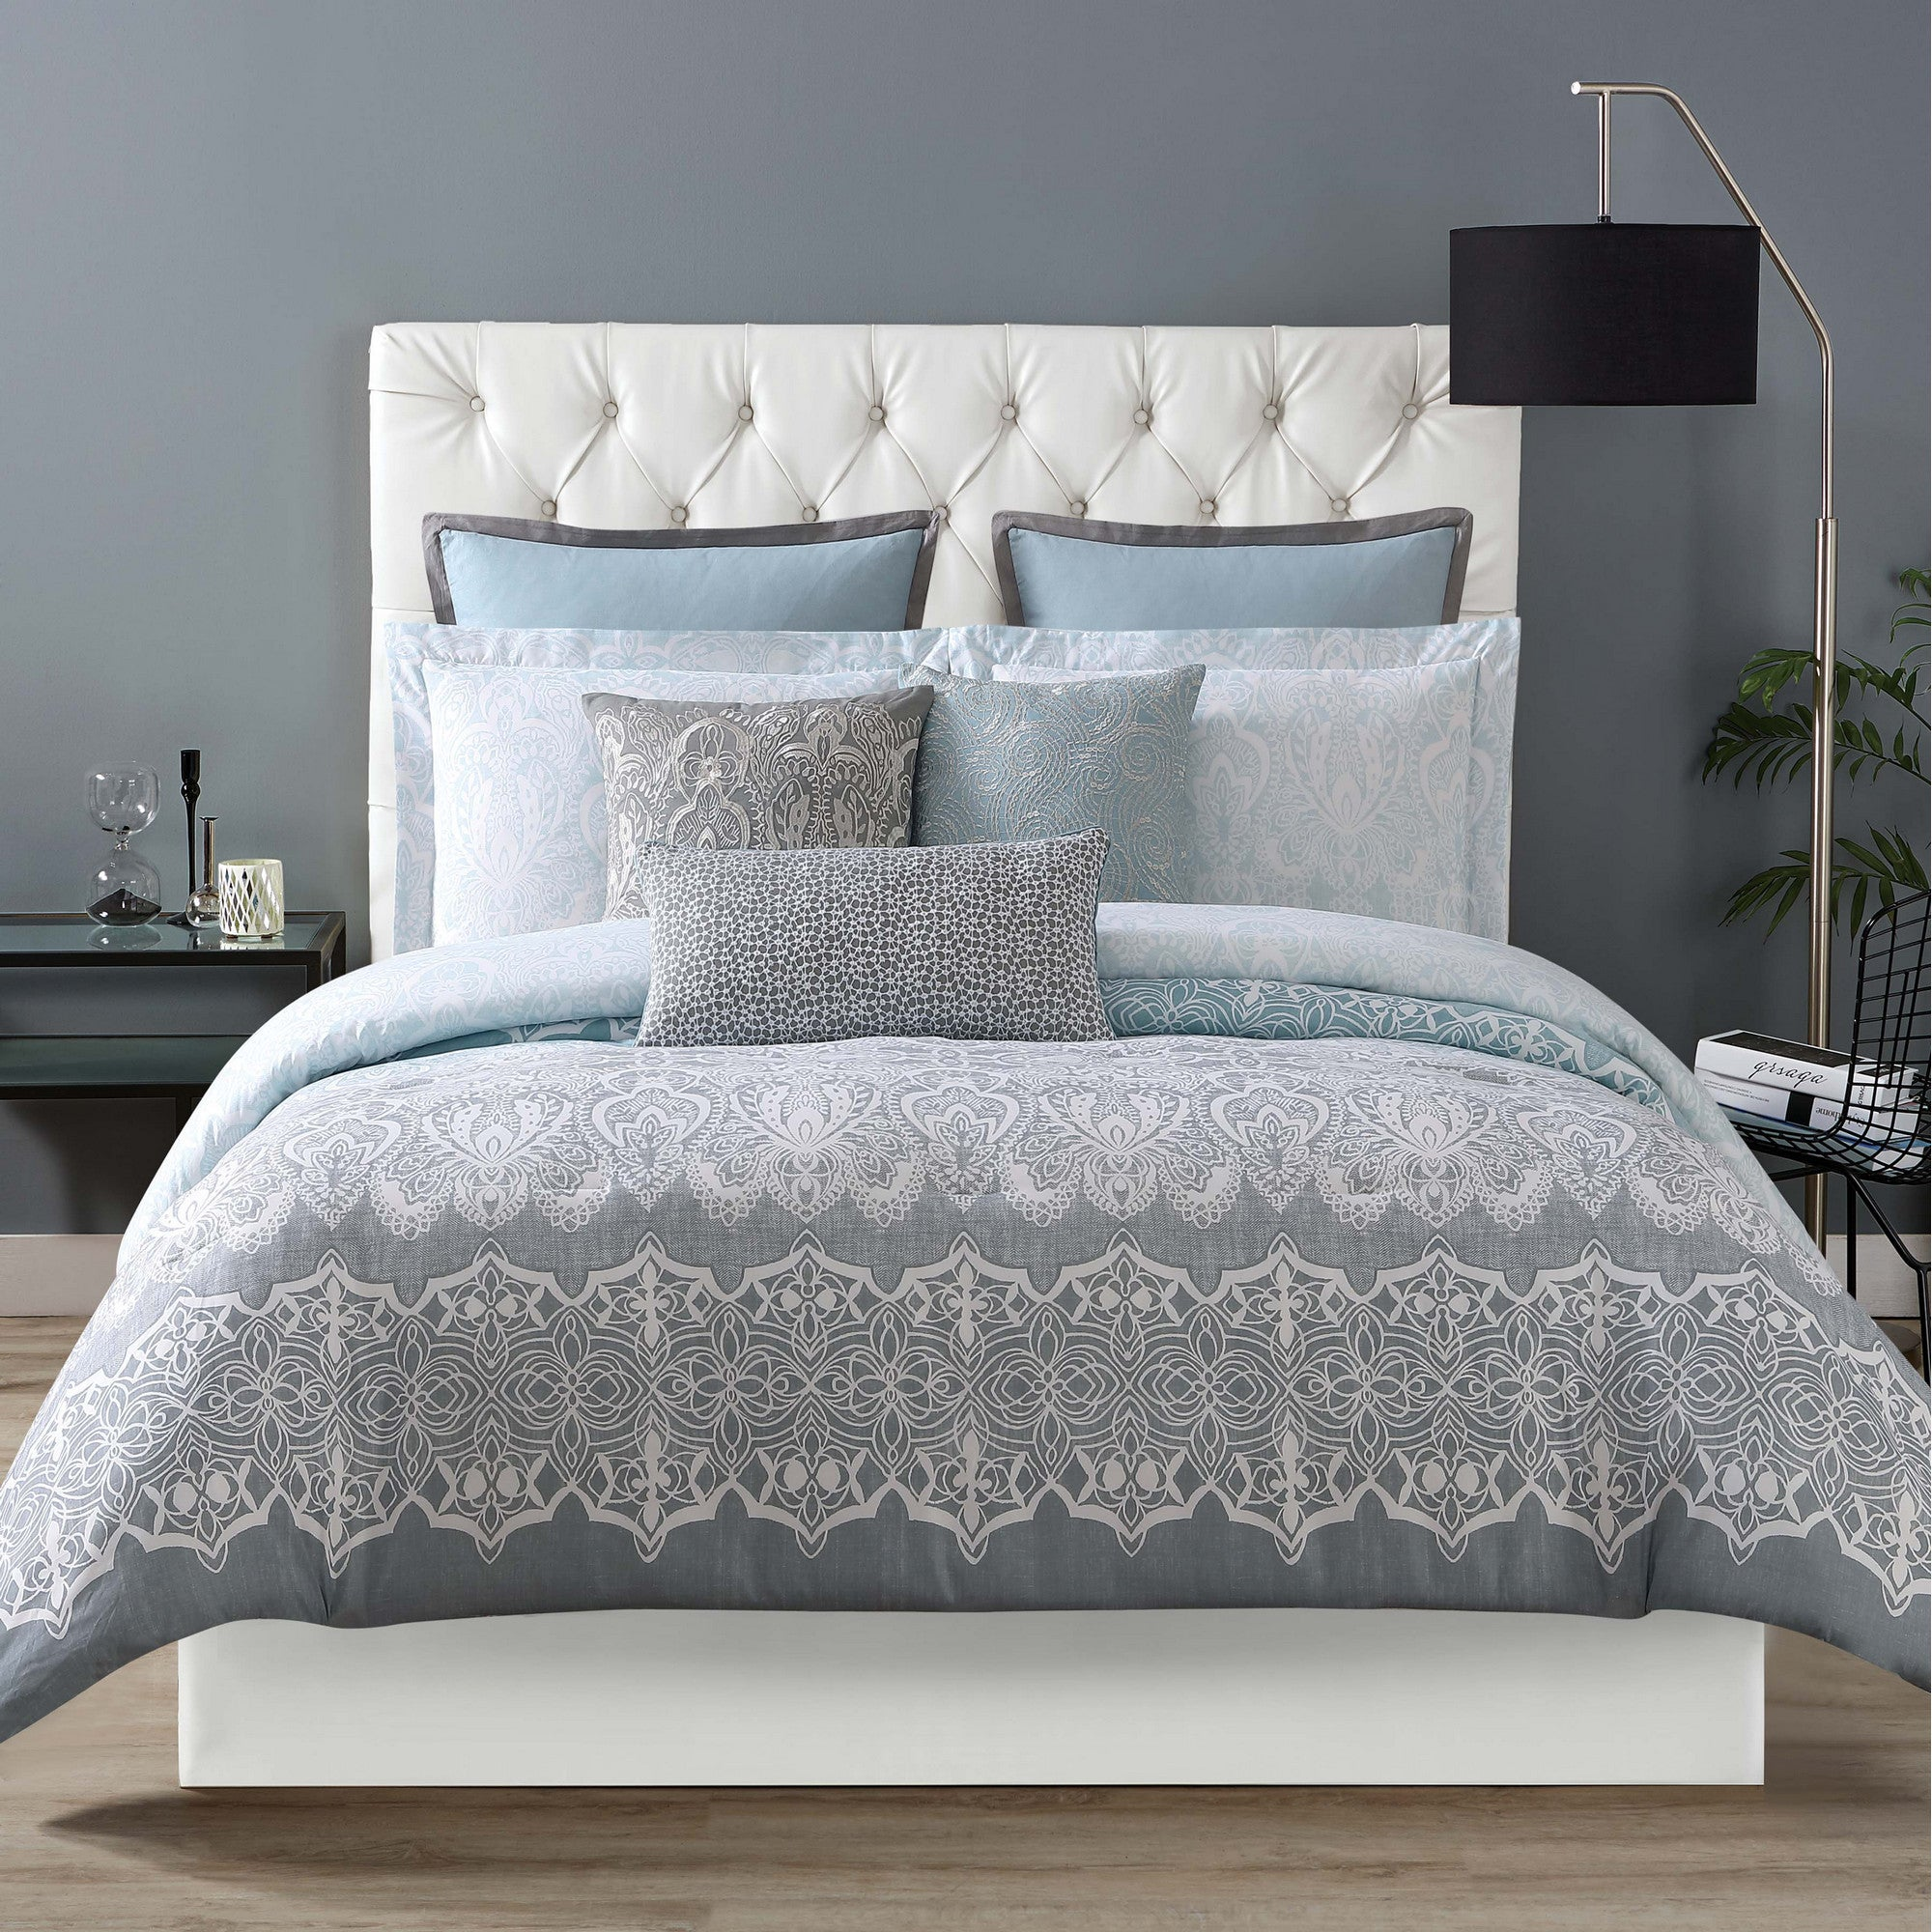 Siriano Ombre Lace Printed 3 Piece Duvet Set Free Shipping Today 25459741